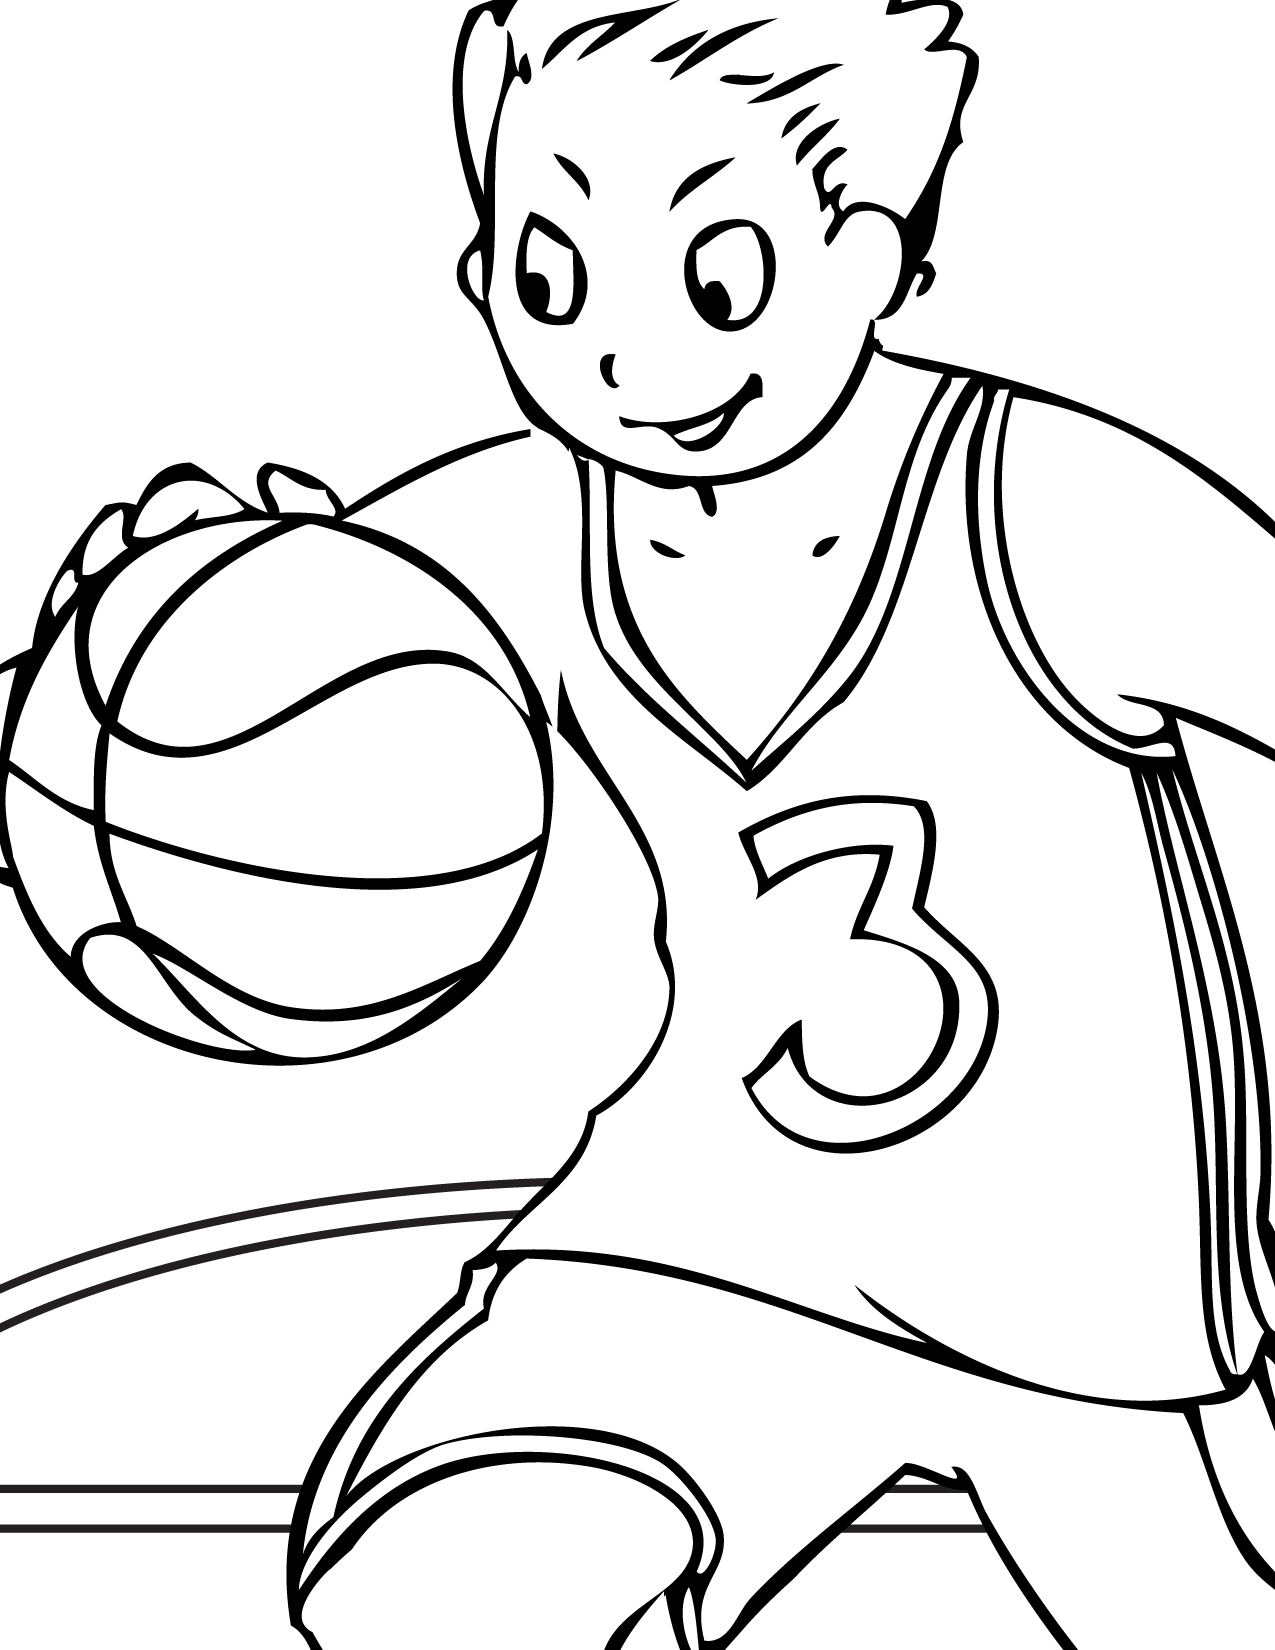 coloring pages free online - photo#26